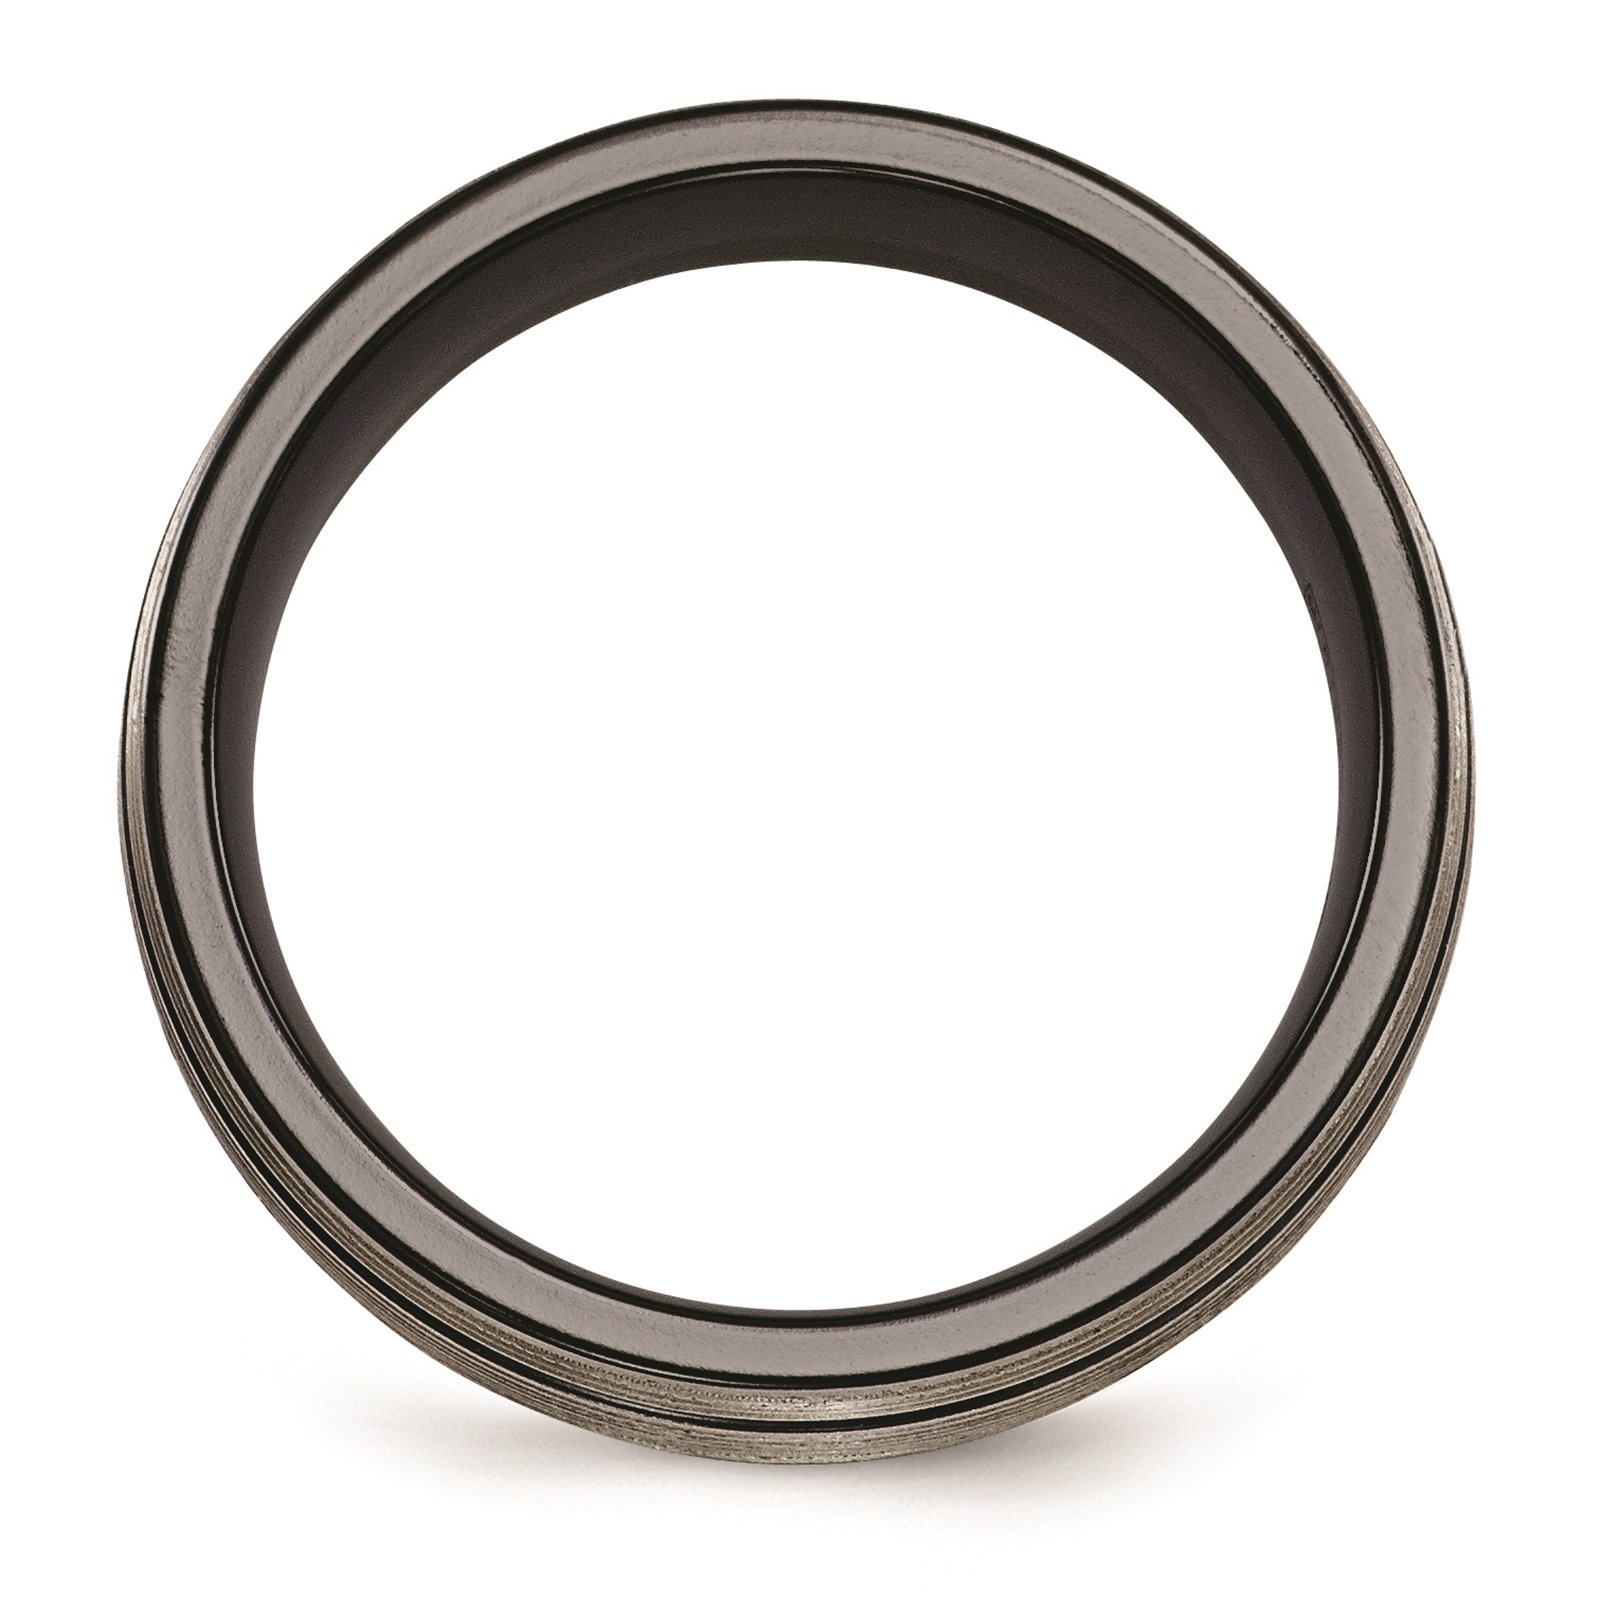 Titanium Black Ti Grooves & Textured Lines Polished 7mm Wedding Ring Band Size 8.5 by Edward Mirell by Venture Edward Mirell Titanium Bands (Image #2)